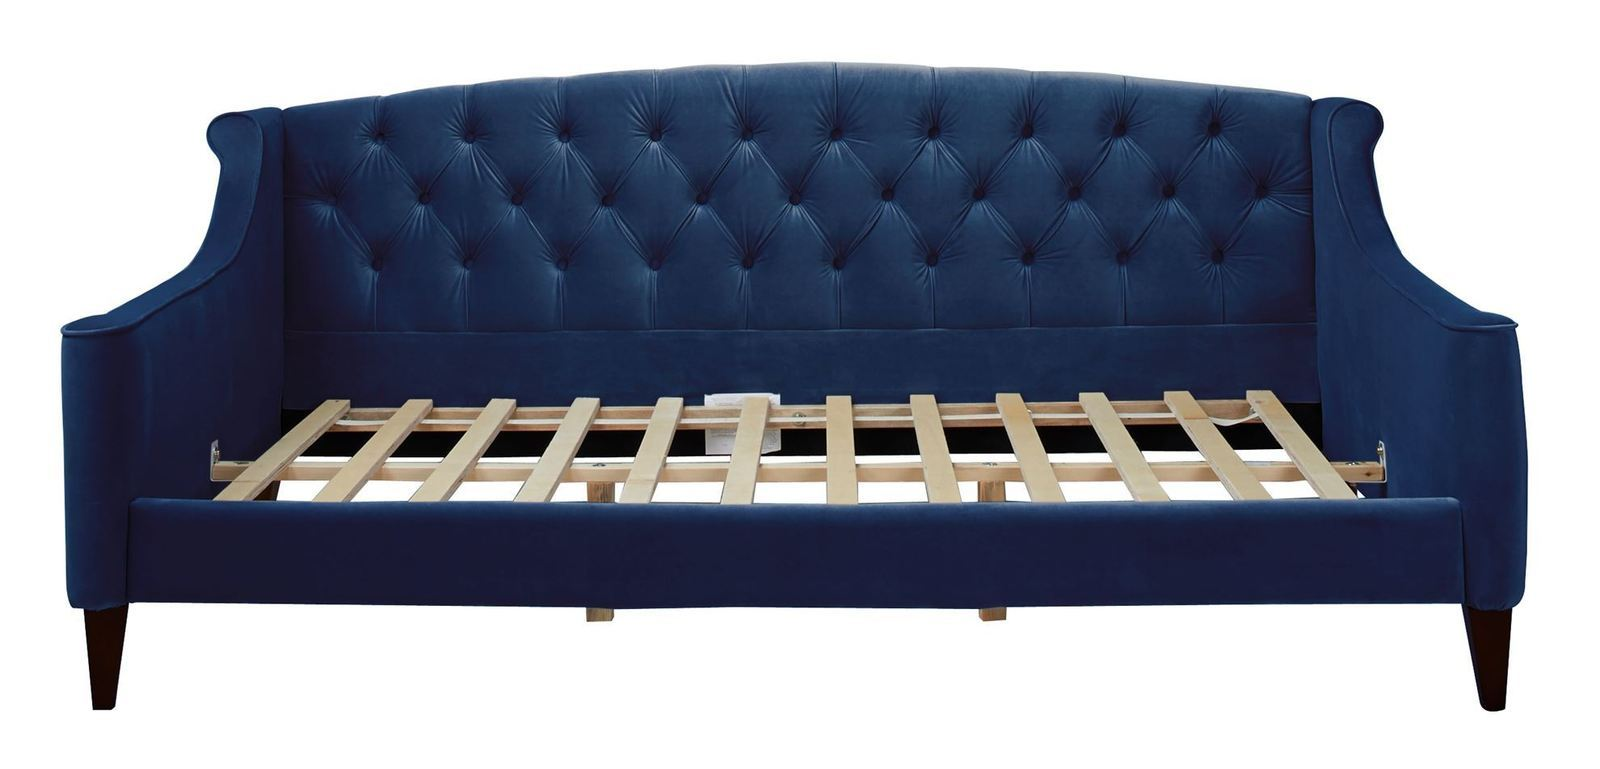 Jennifer taylor home lucy sofa bed navy blue beds bed for Jennifer taylor sofa bed